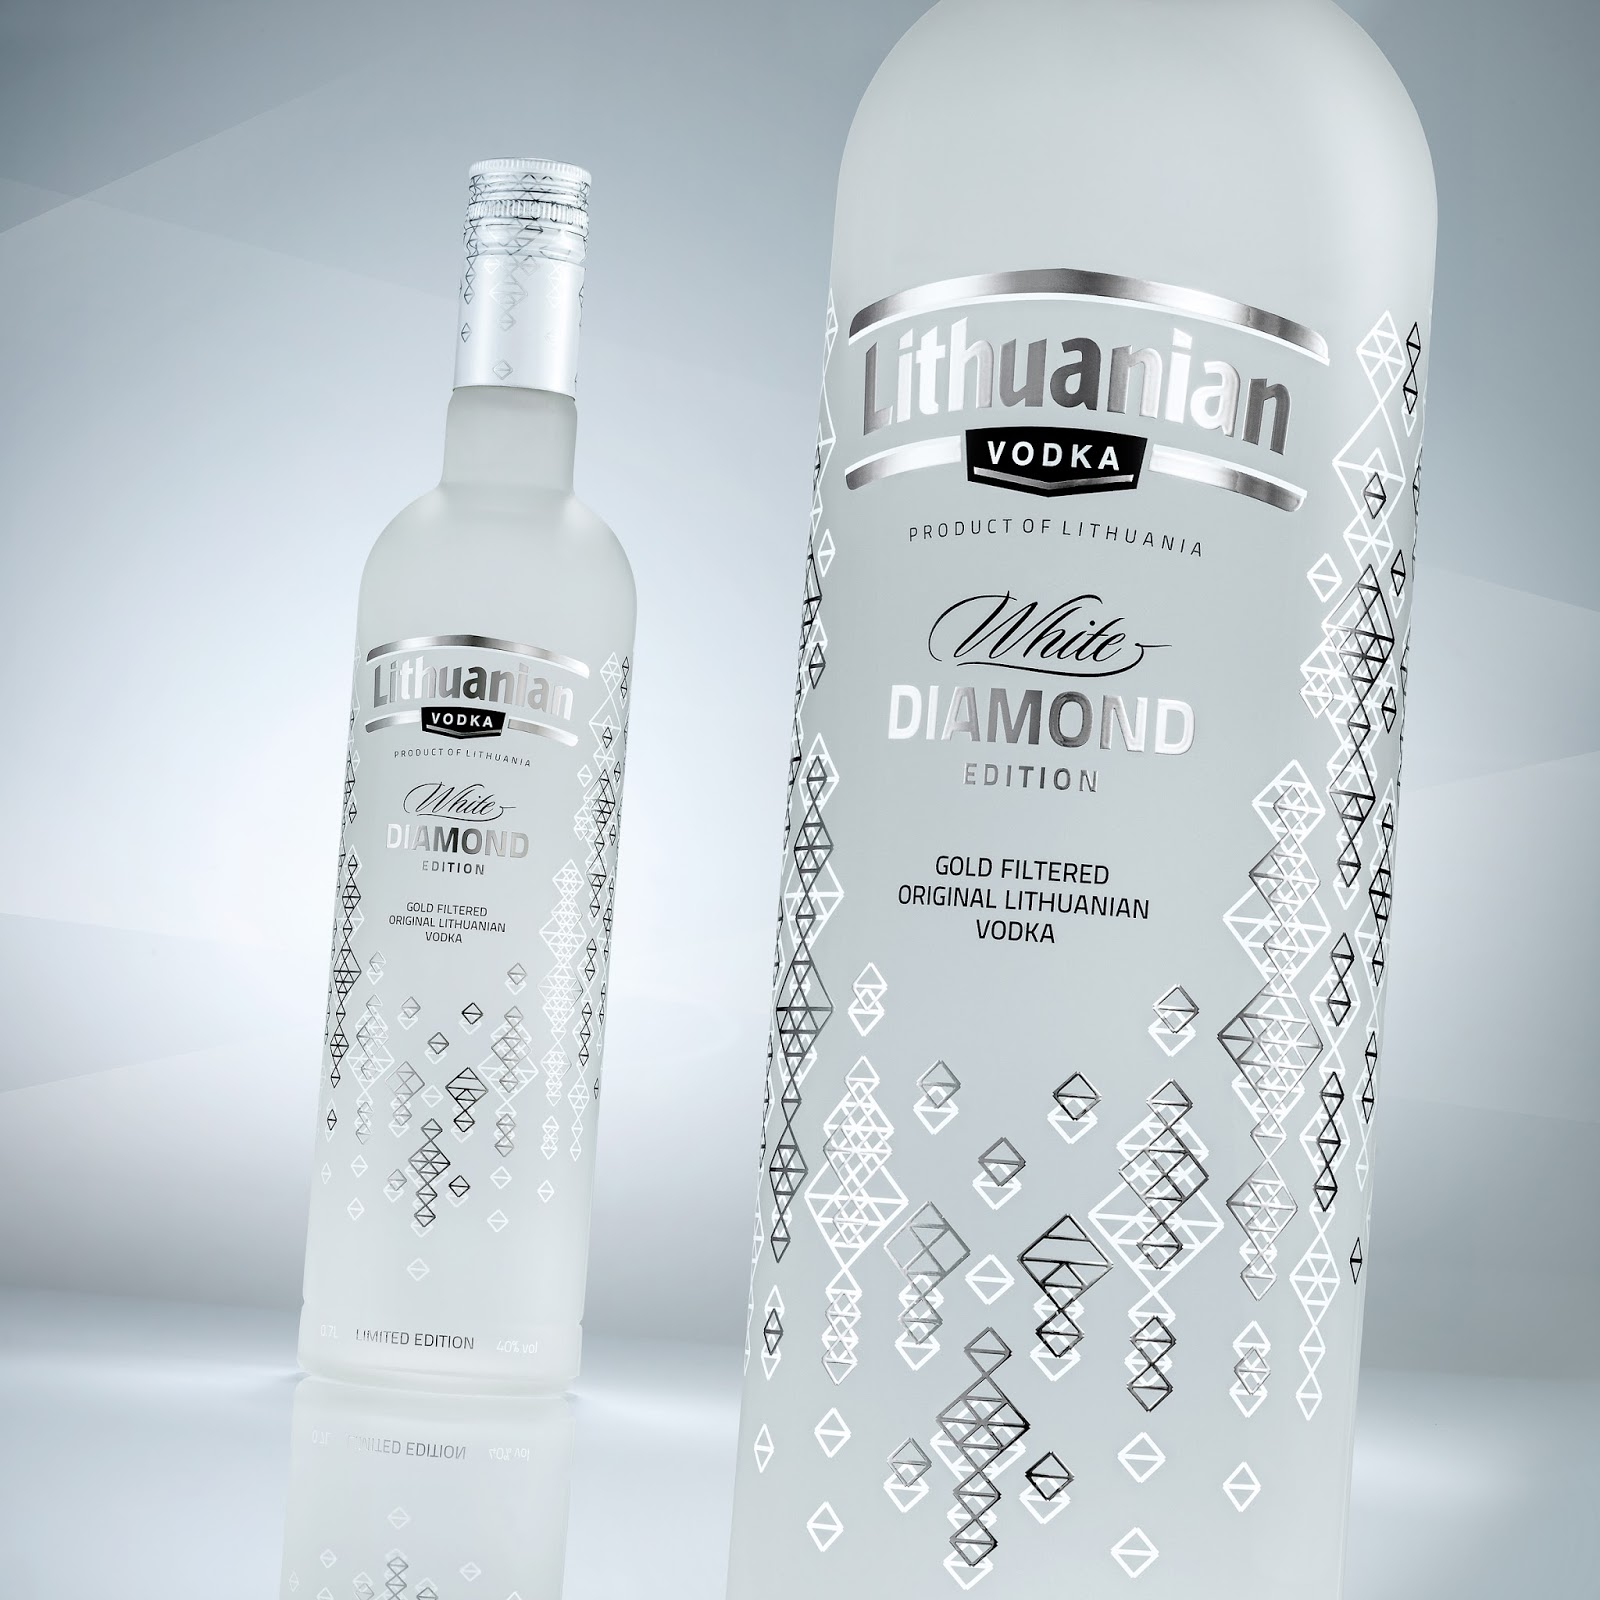 Lithuanian Vodka Gold. Diamond Edition On Packaging Of The